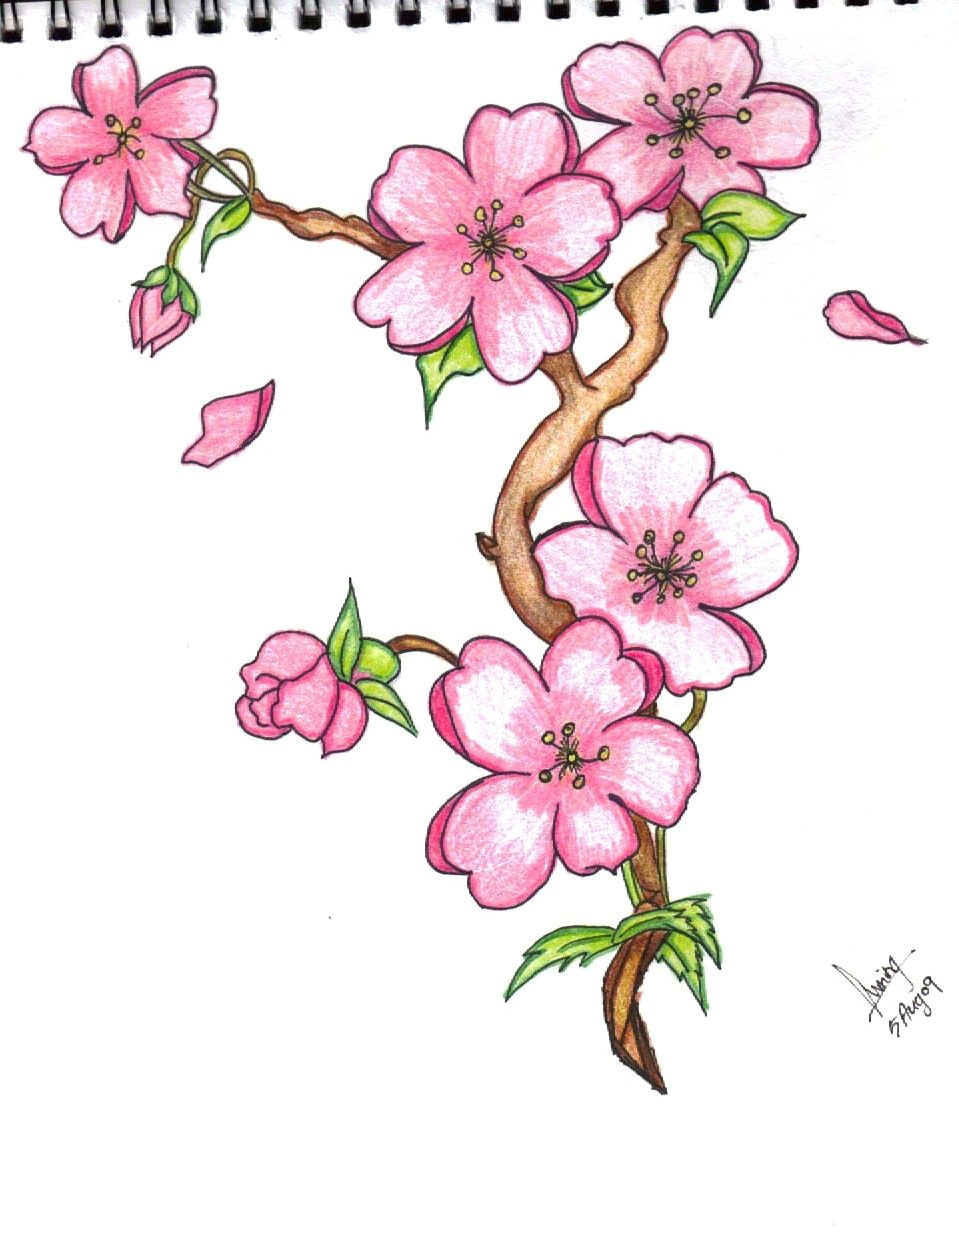 flower drawings a beautiful flower always makes us smile imagine replicating your flowers in the